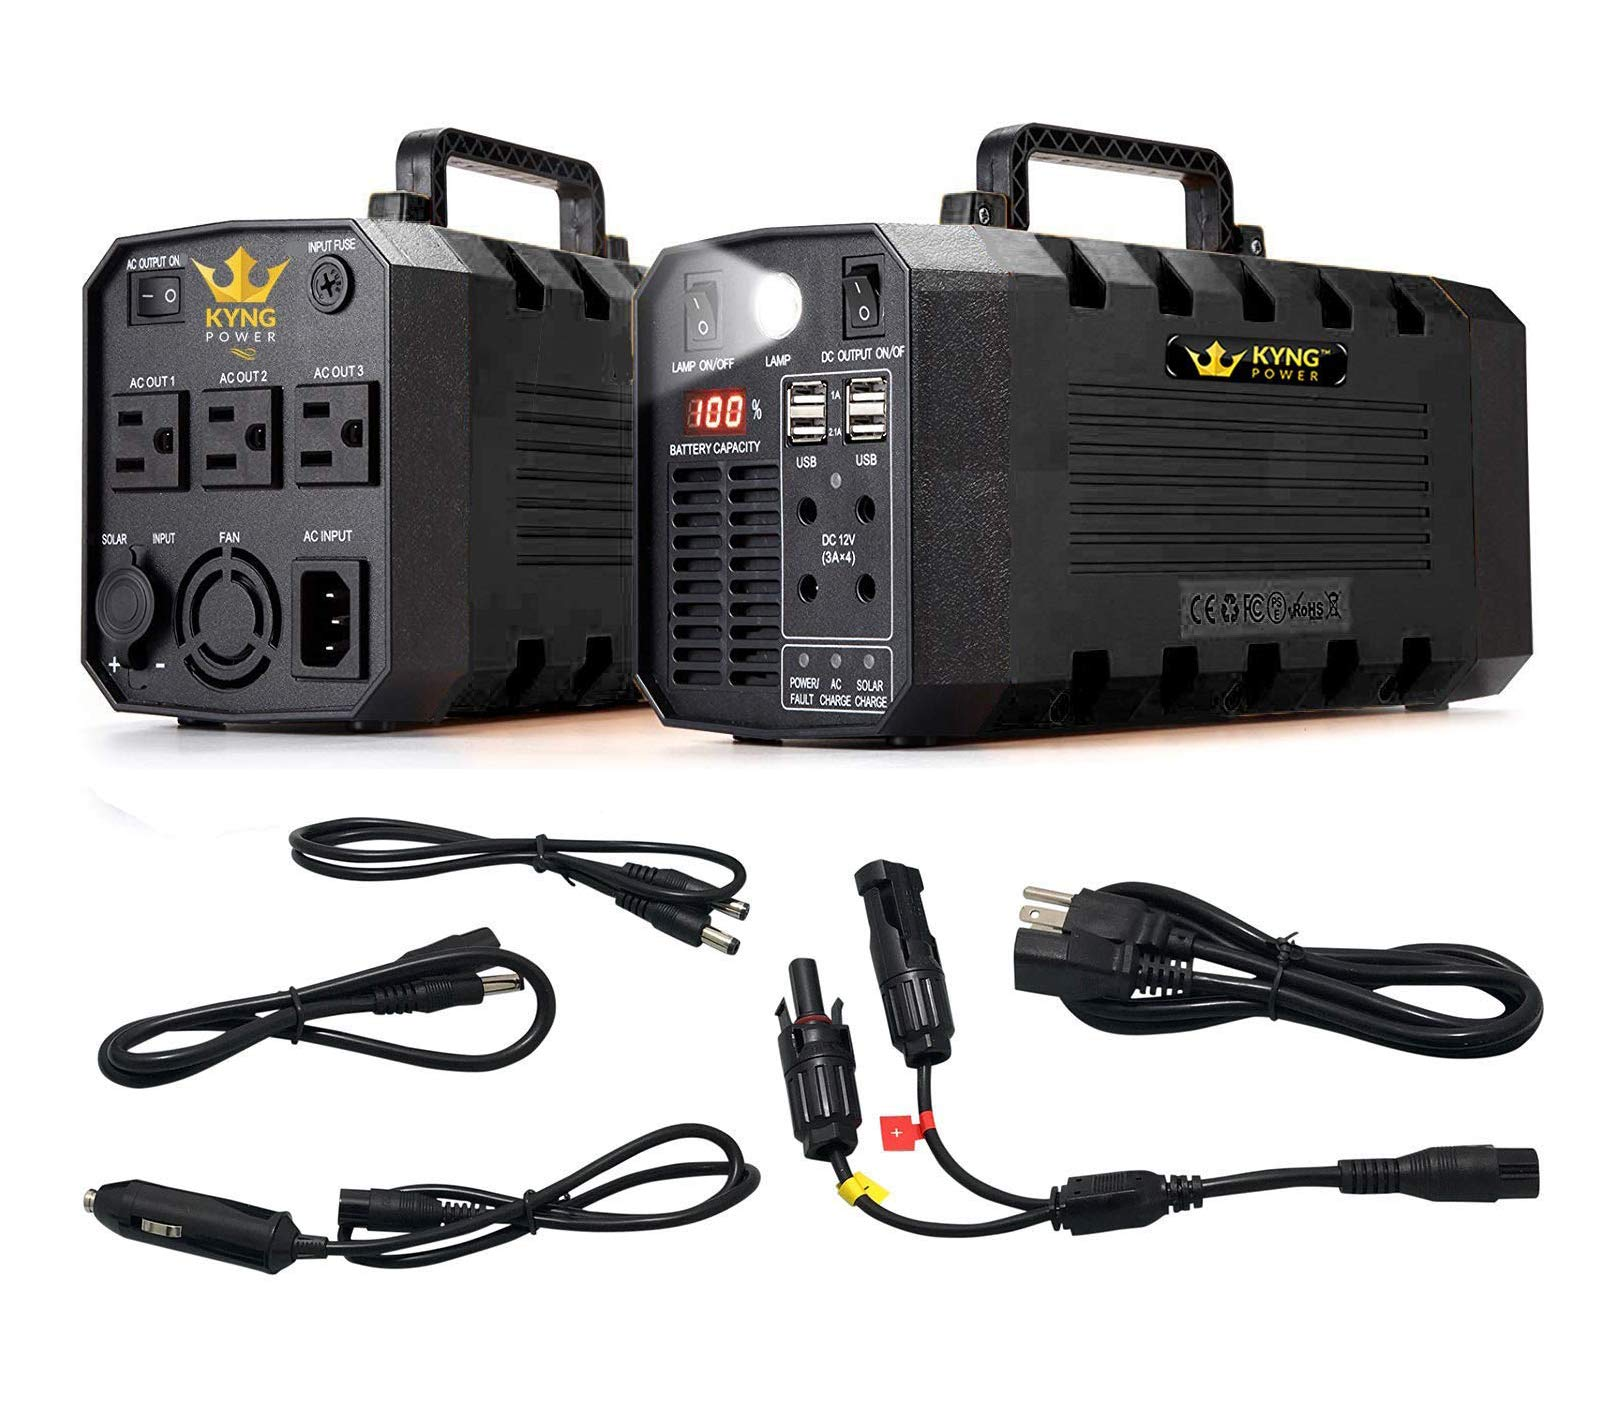 Kyng Power Generator Continuous Rechargeable